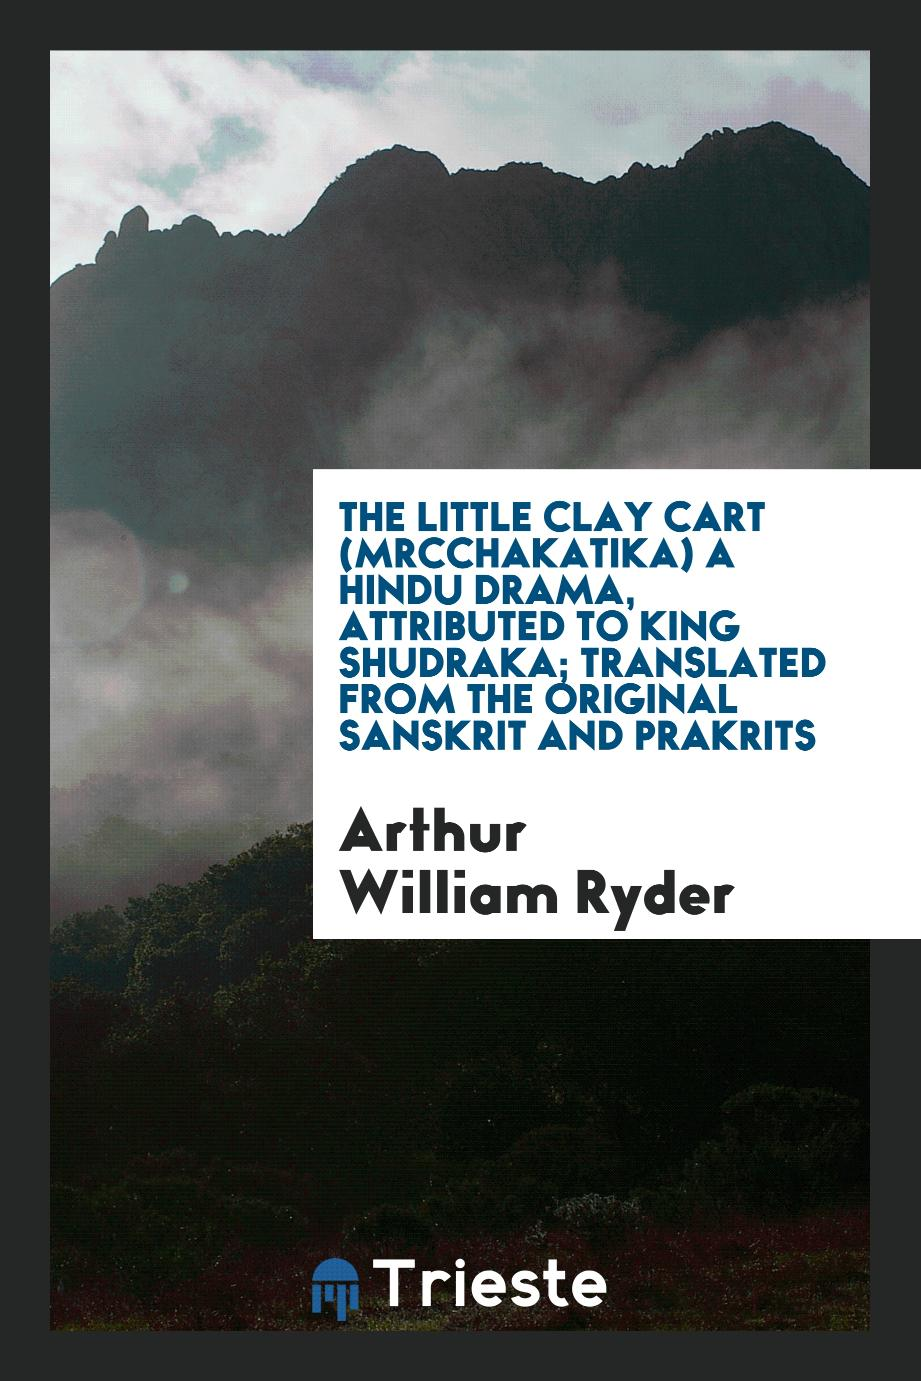 The little clay cart (Mrcchakatika) a Hindu drama, attributed to King Shudraka; translated from the original Sanskrit and Prakrits